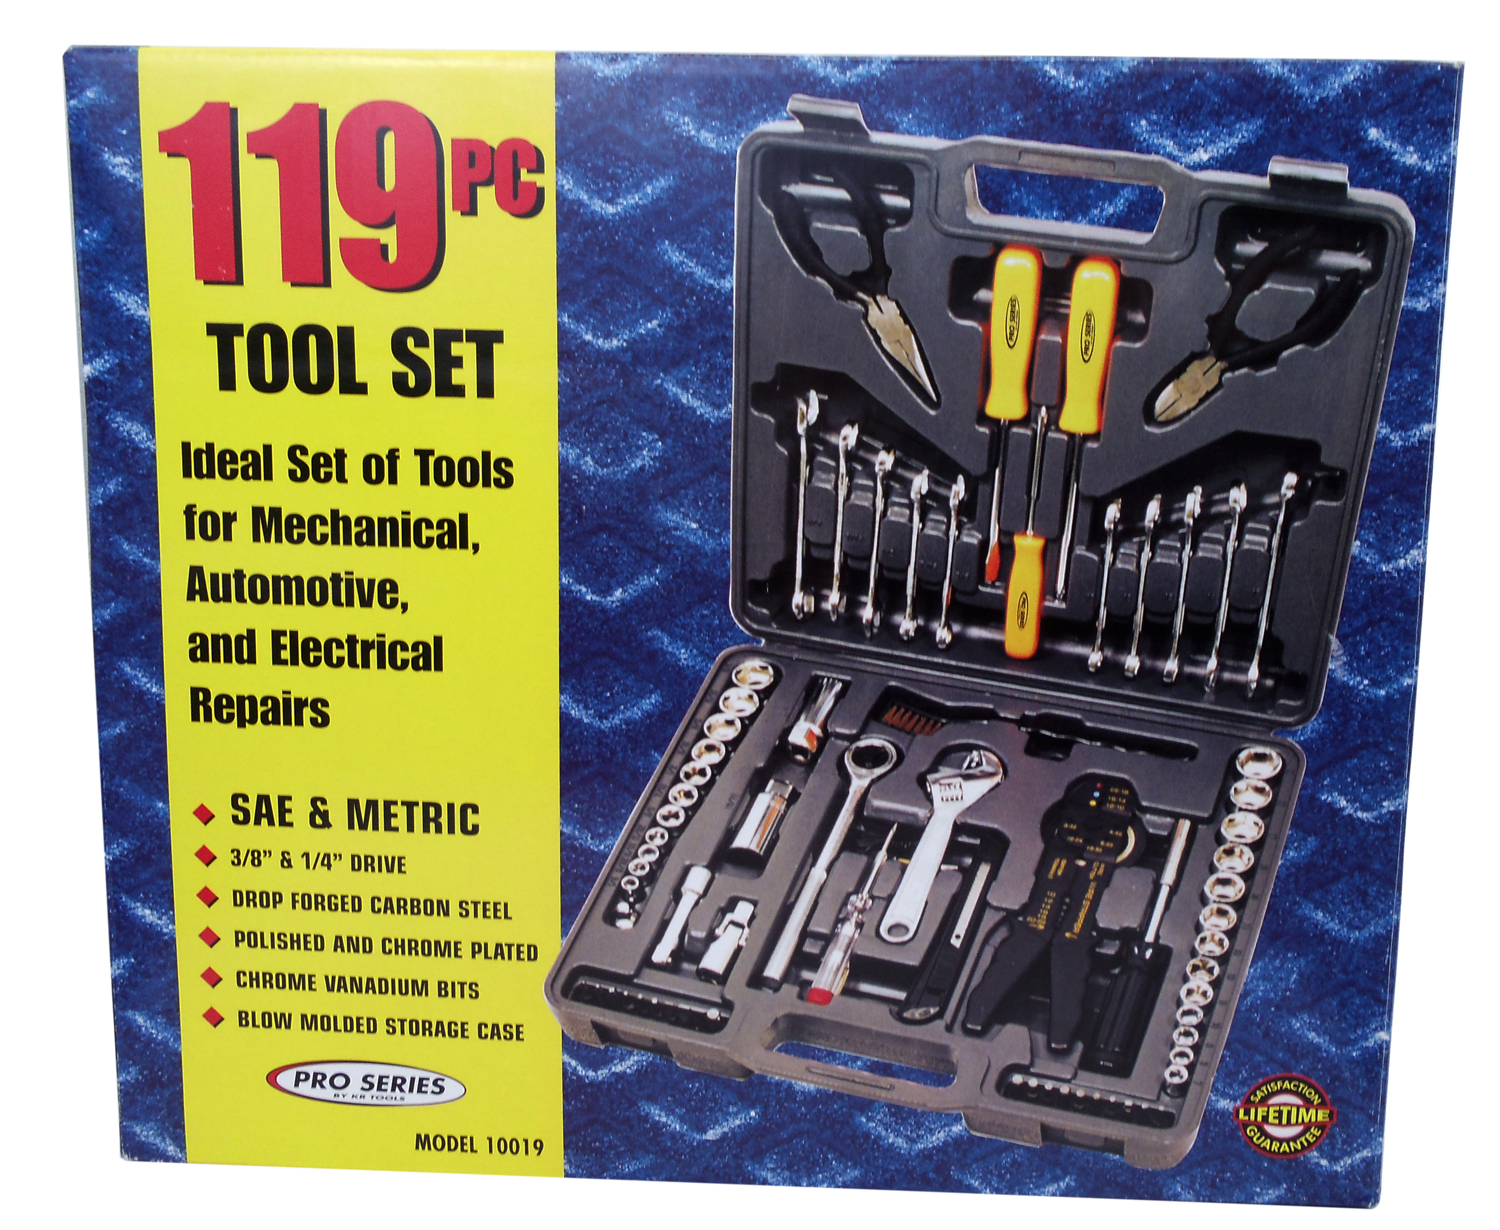 07510019 - 119 Piece Metric Tool Set